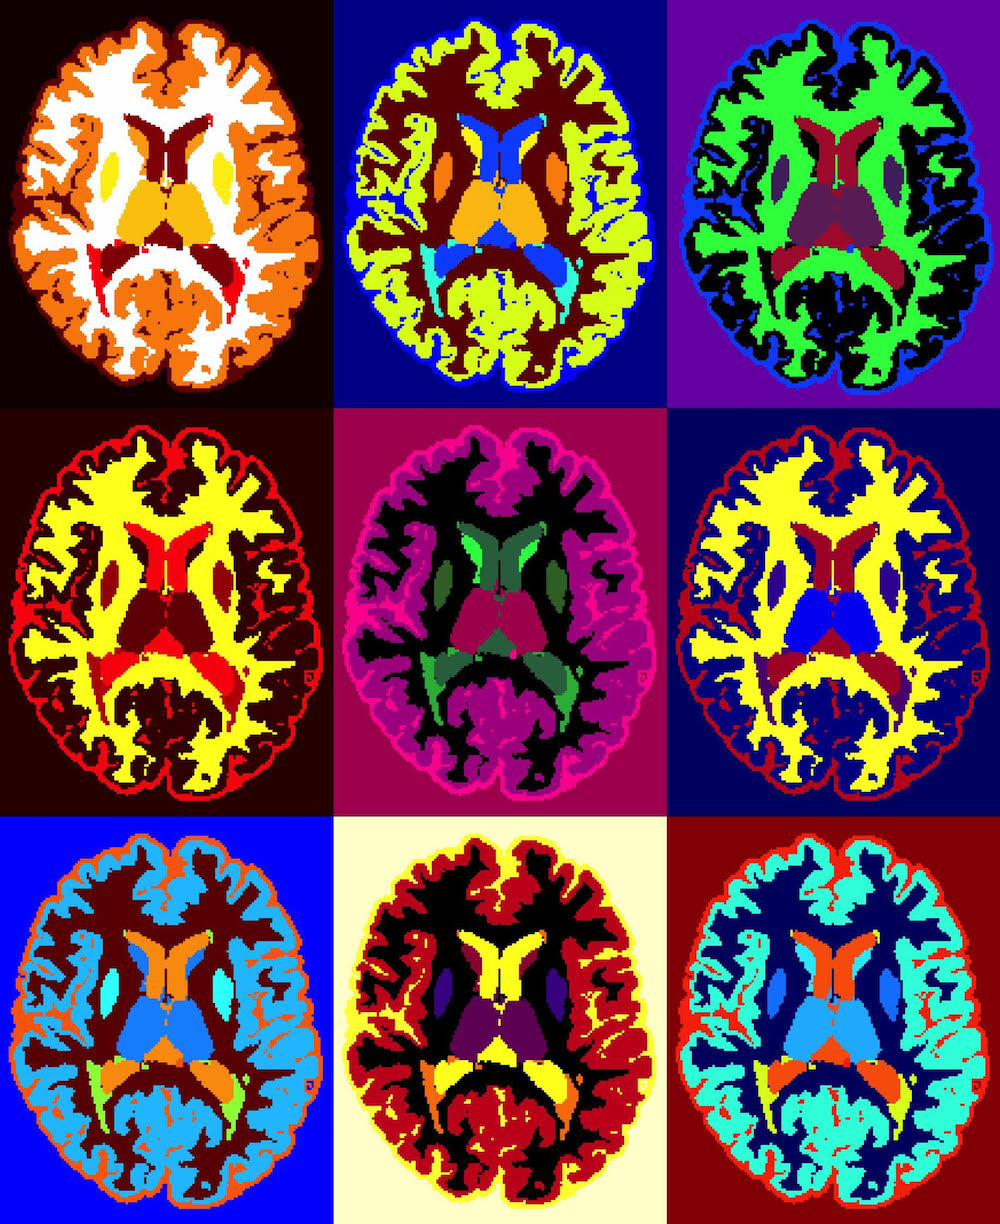 NWB:N supports storage and use of data from complex neurophysiology experiments and enables collaboration and sharing, reuse, and reproduction of data and analysis across teams and projects. Image shows MRI scans of a person with multiple sclerosis. (Credit: Ilena George and Daniel Reich, National Institute of Neurological Disorders and Stroke, National Institutes of Health